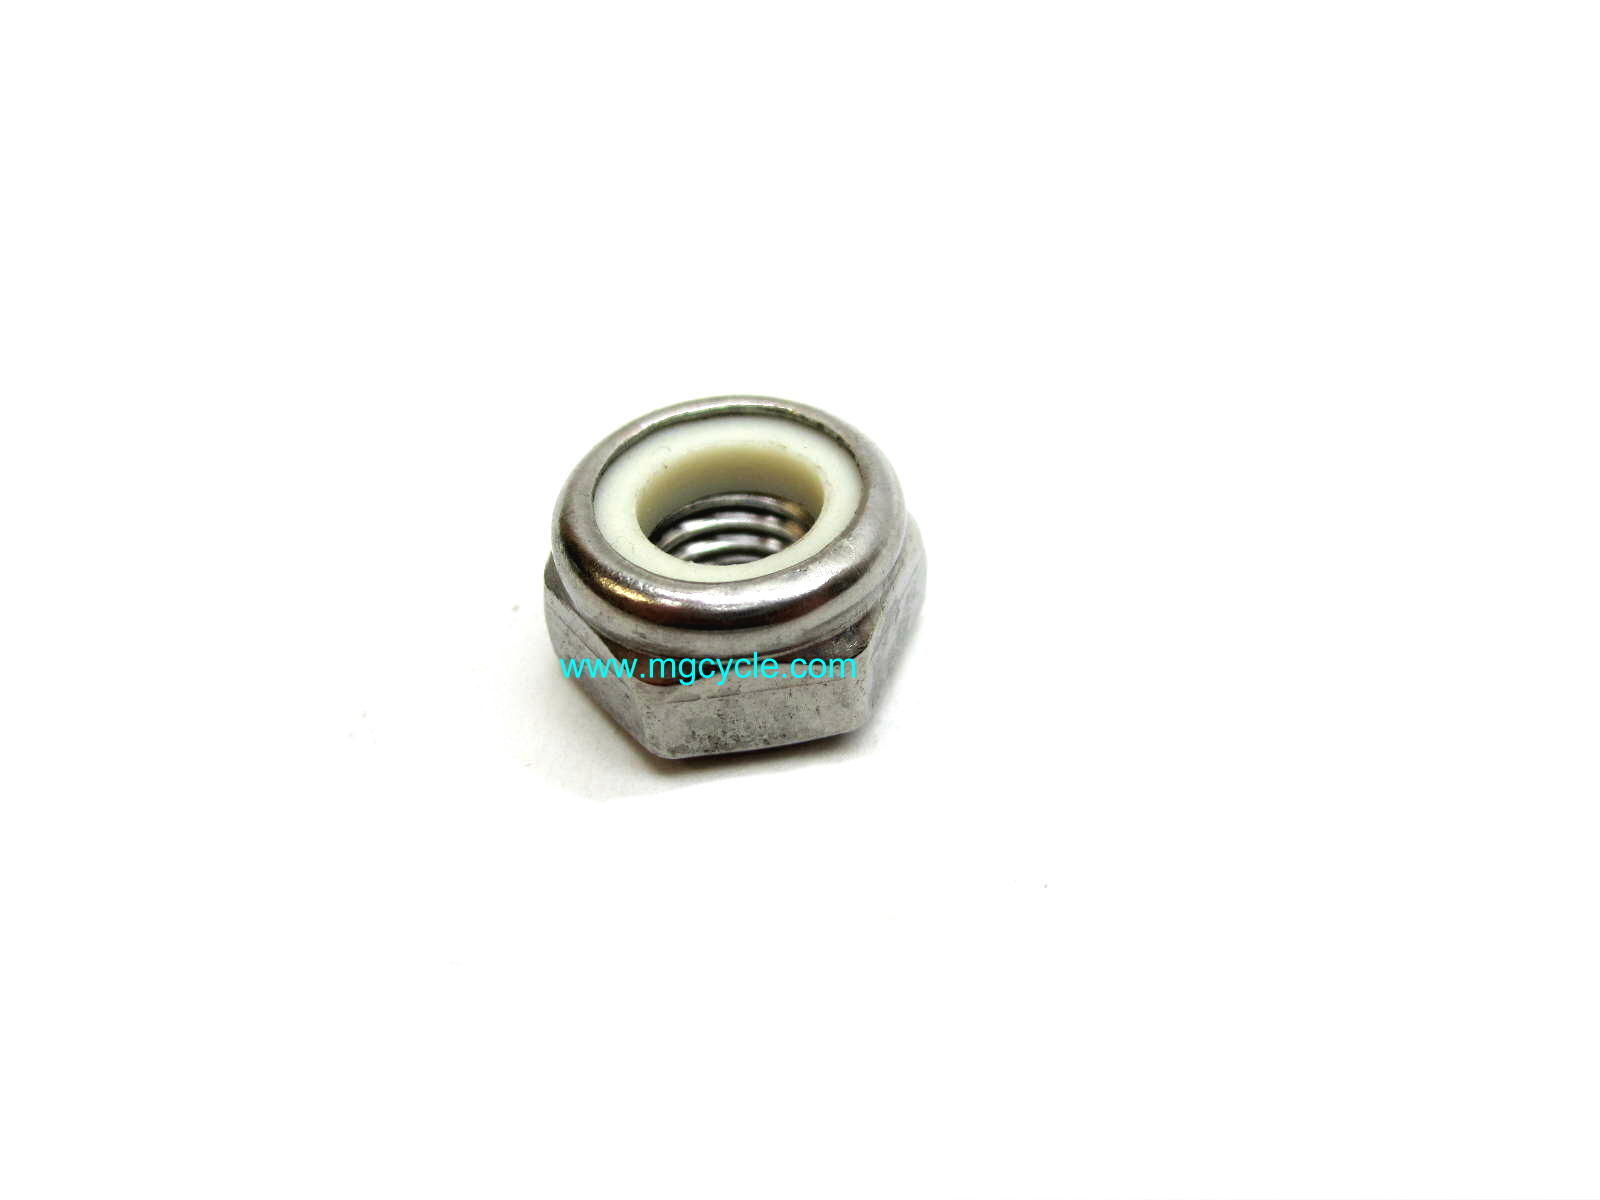 10mm Lock Nut, stainless steel